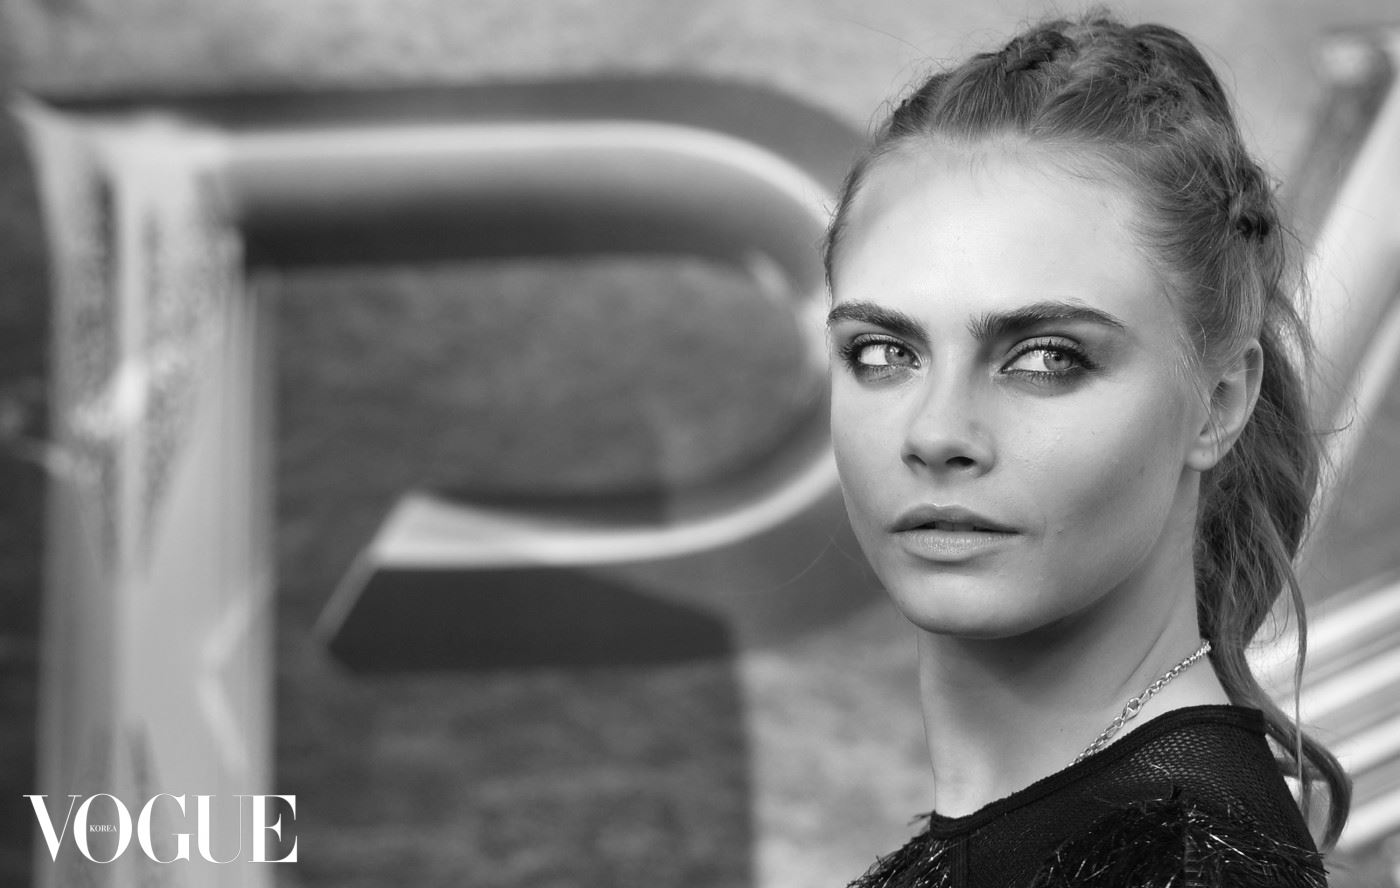 """LONDON, ENGLAND - SEPTEMBER 20:  (EDITORS NOTE: Image has been converted to black and white.) Cara Delevingne attends the World Premiere of """"Pan"""" at Odeon Leicester Square on September 20, 2015 in London, England.  (Photo by Anthony Harvey/Getty Images)"""